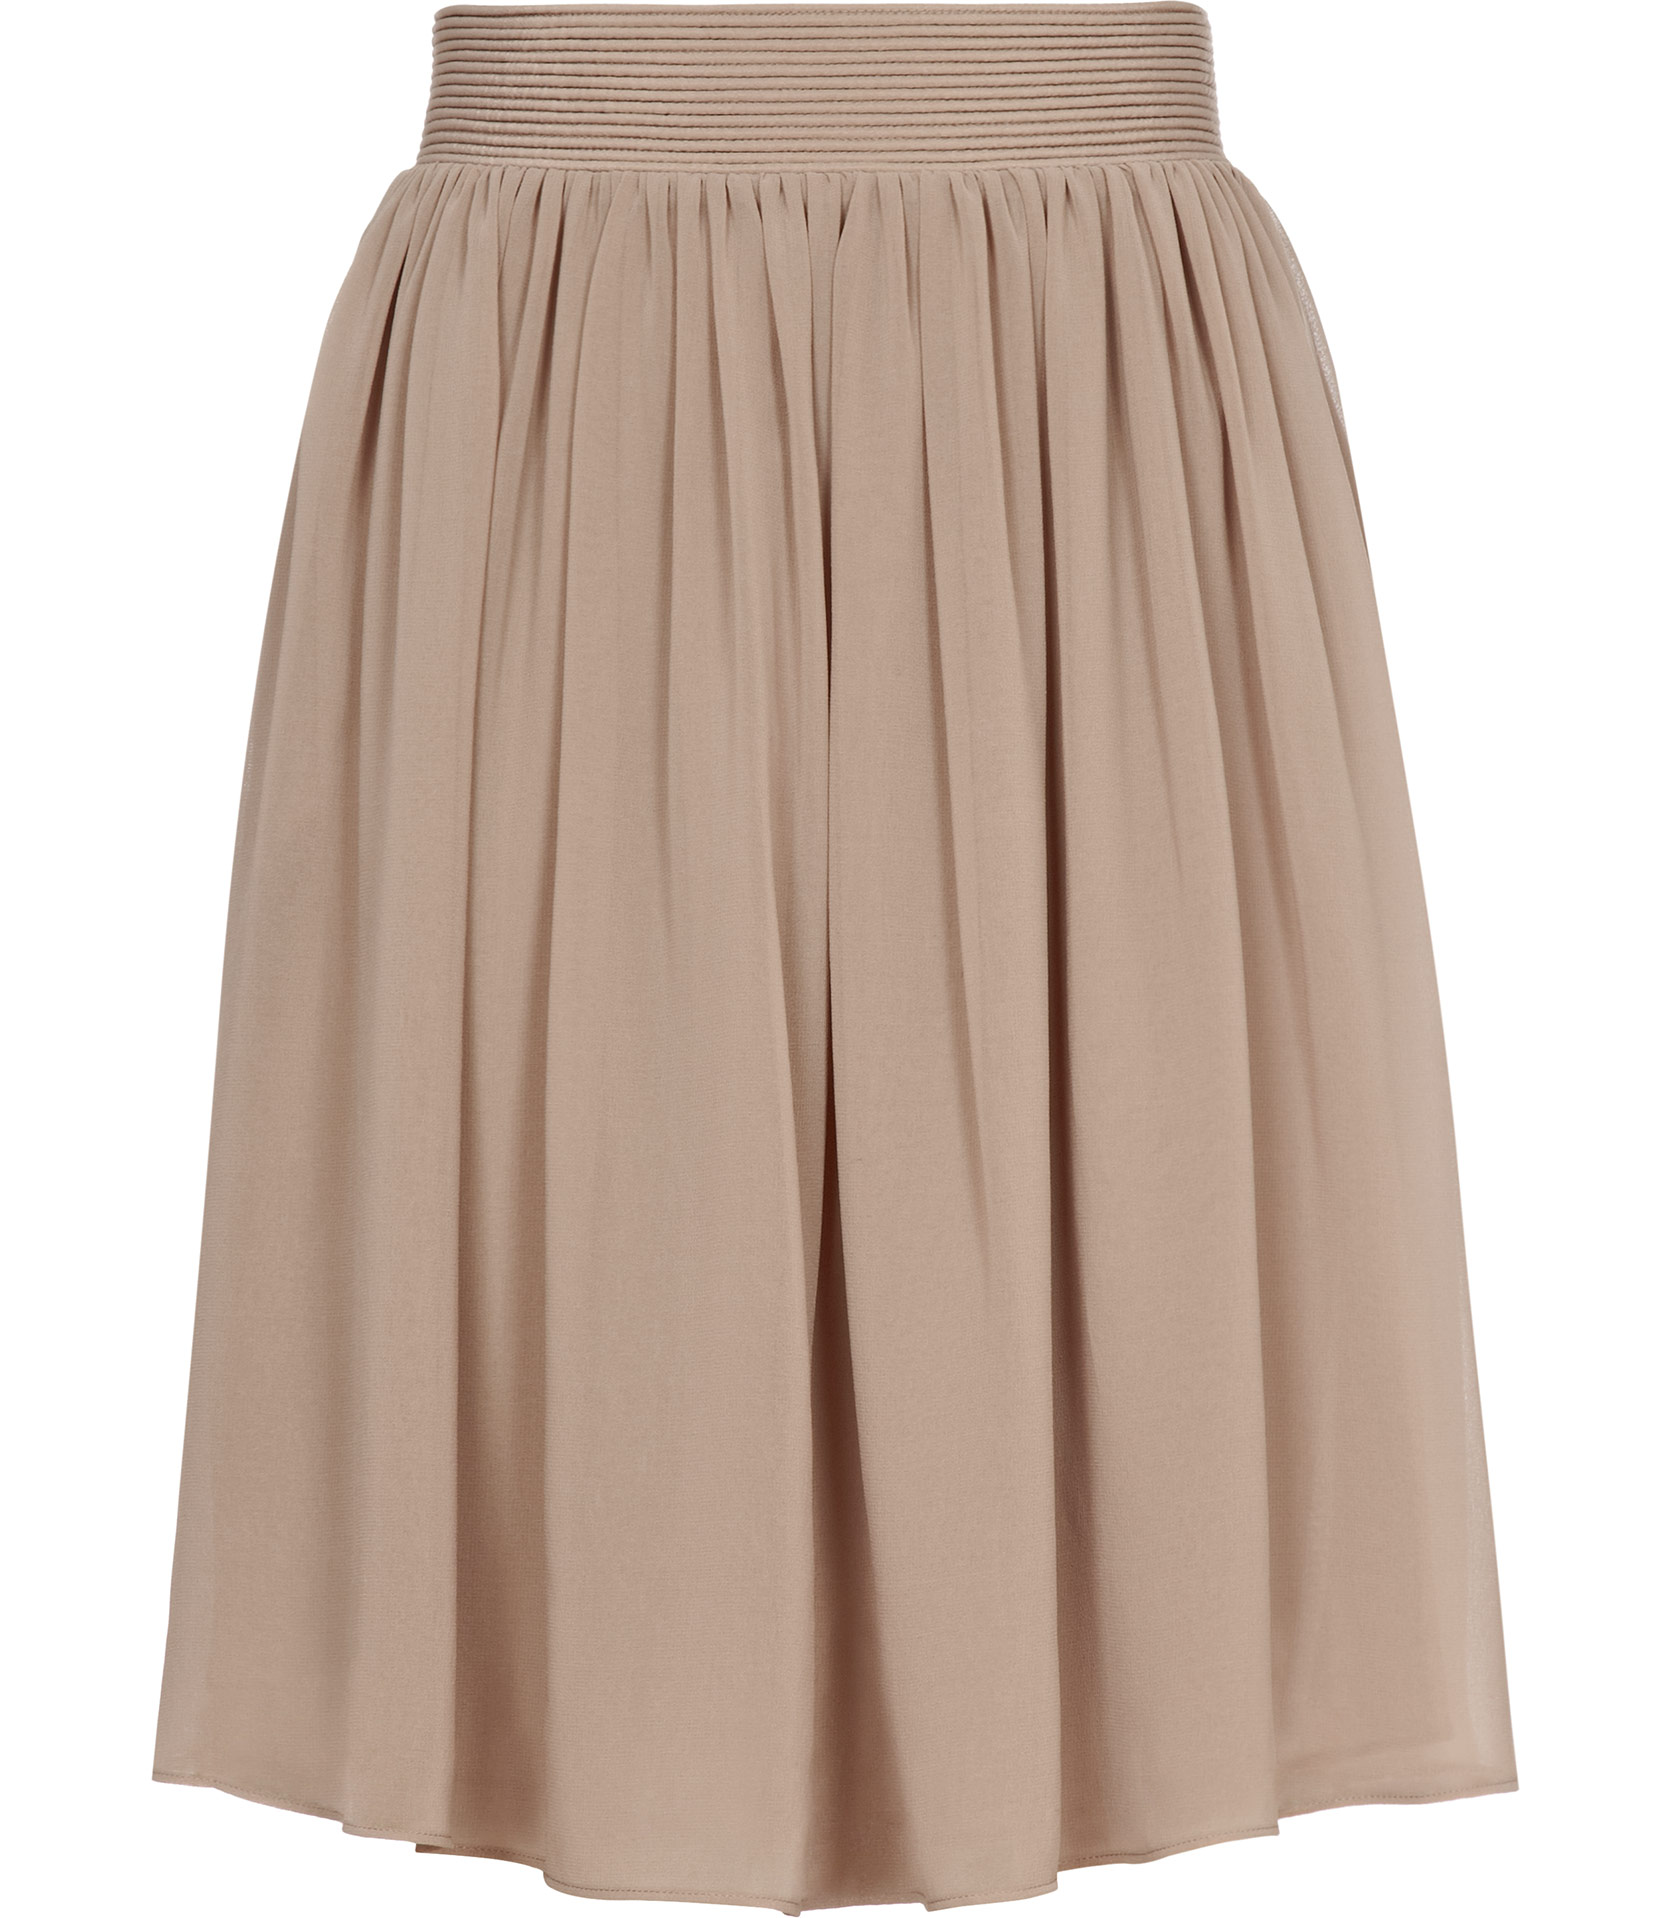 How to Style a Pleated Skirt photo